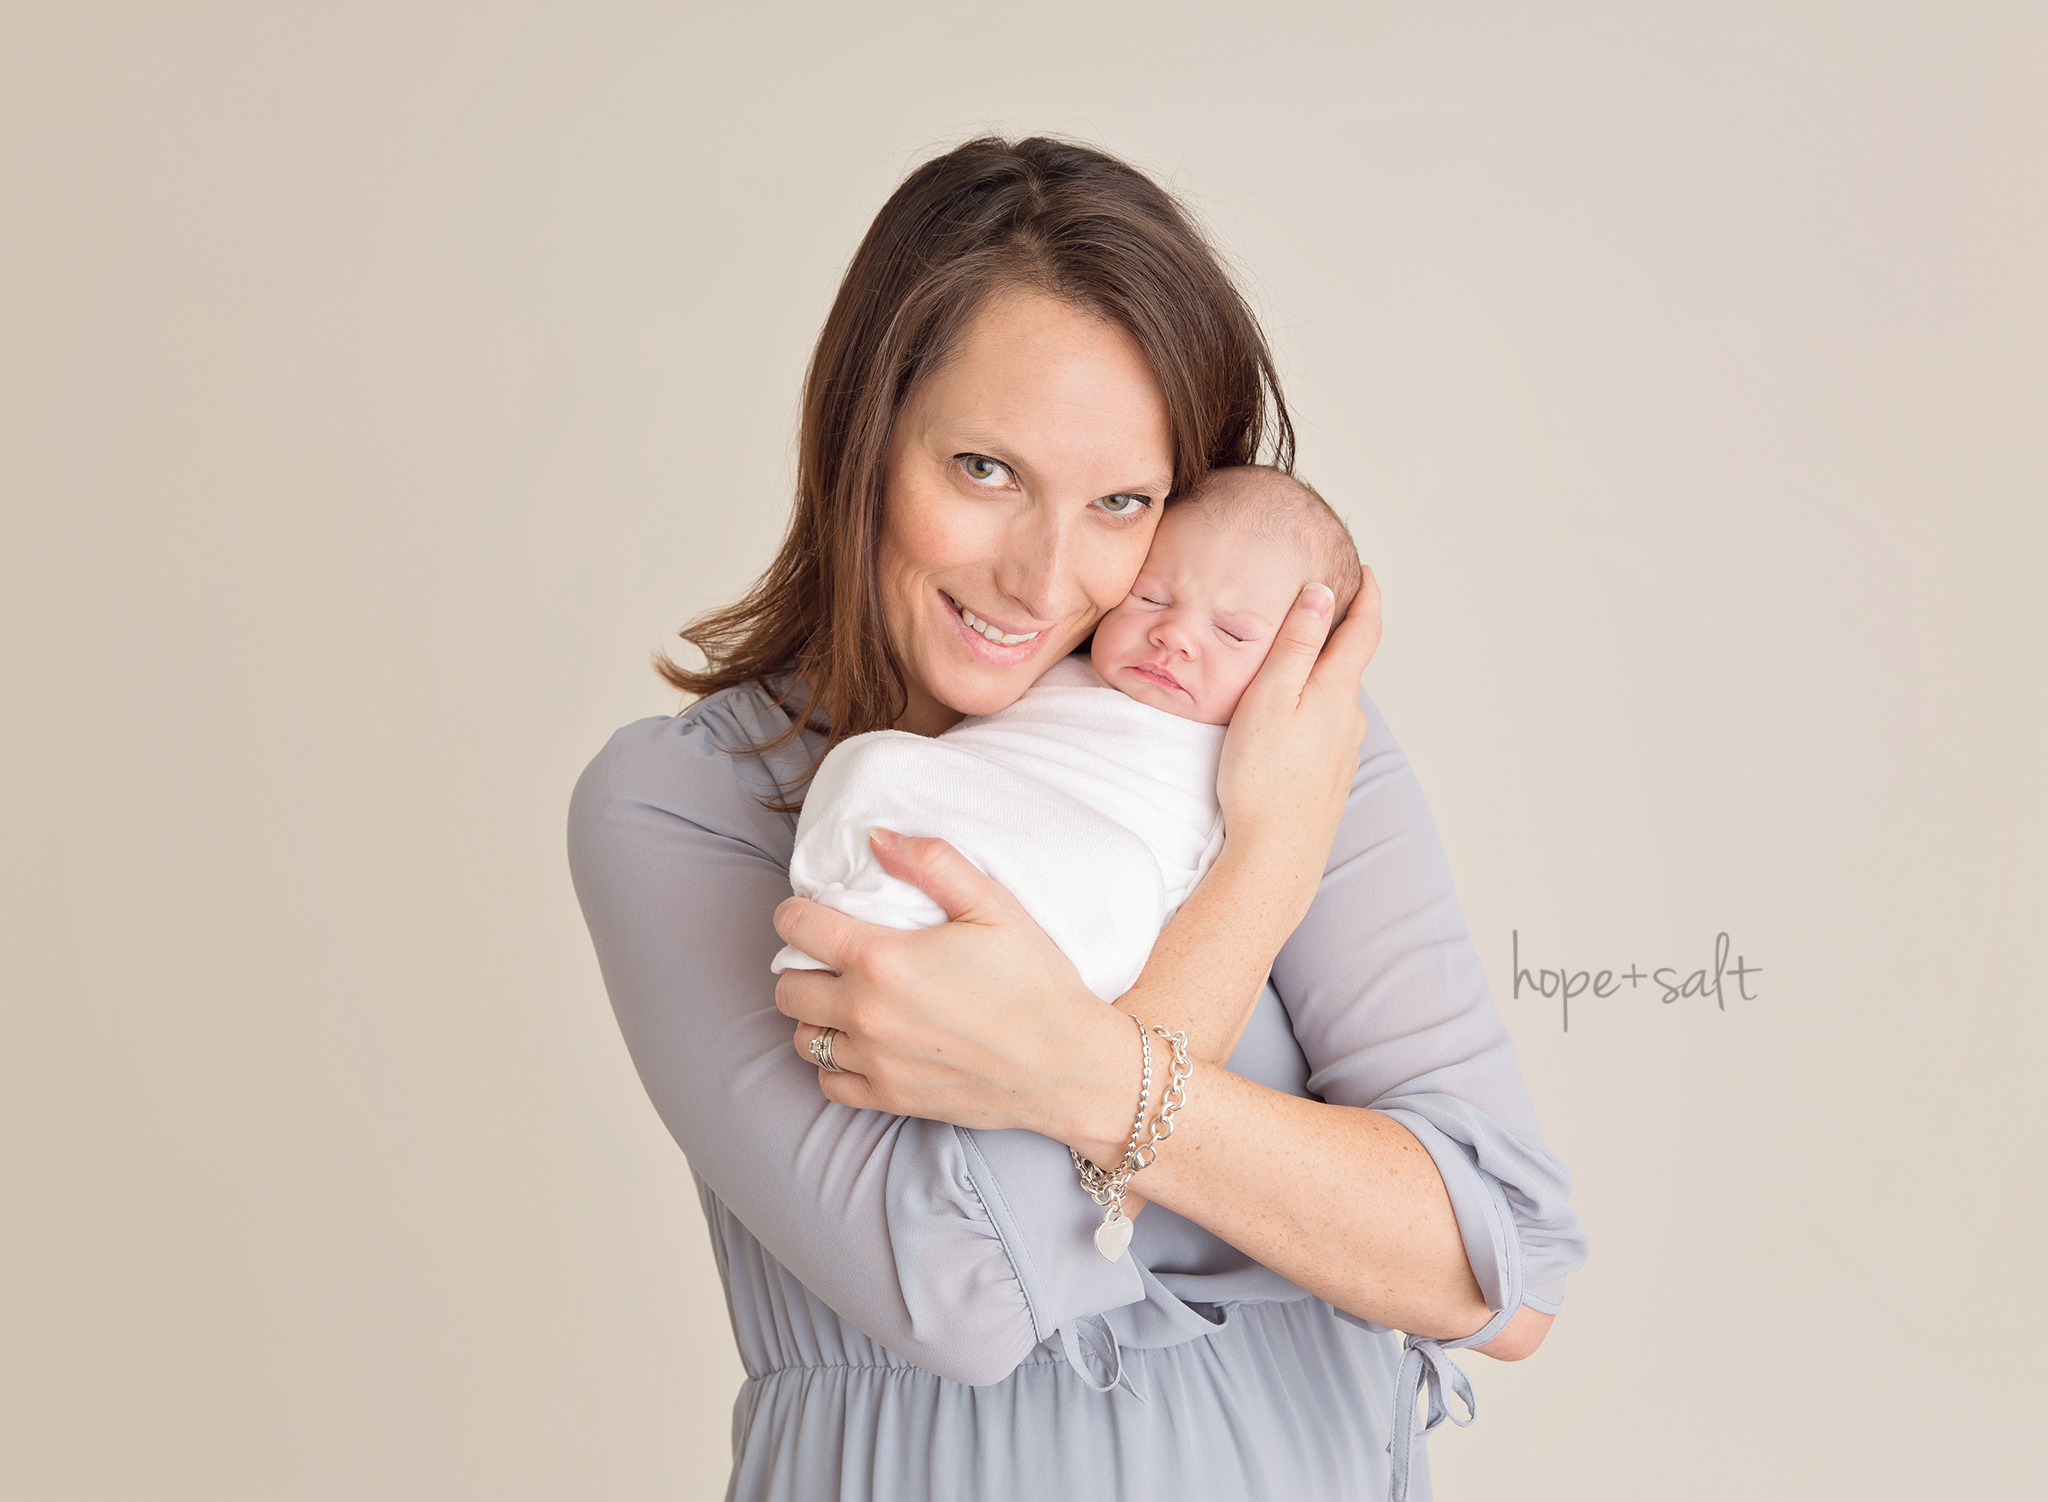 hamilton newborn photographer - studio session for baby girl evangeline and family simple all neutrals timeless and classic images